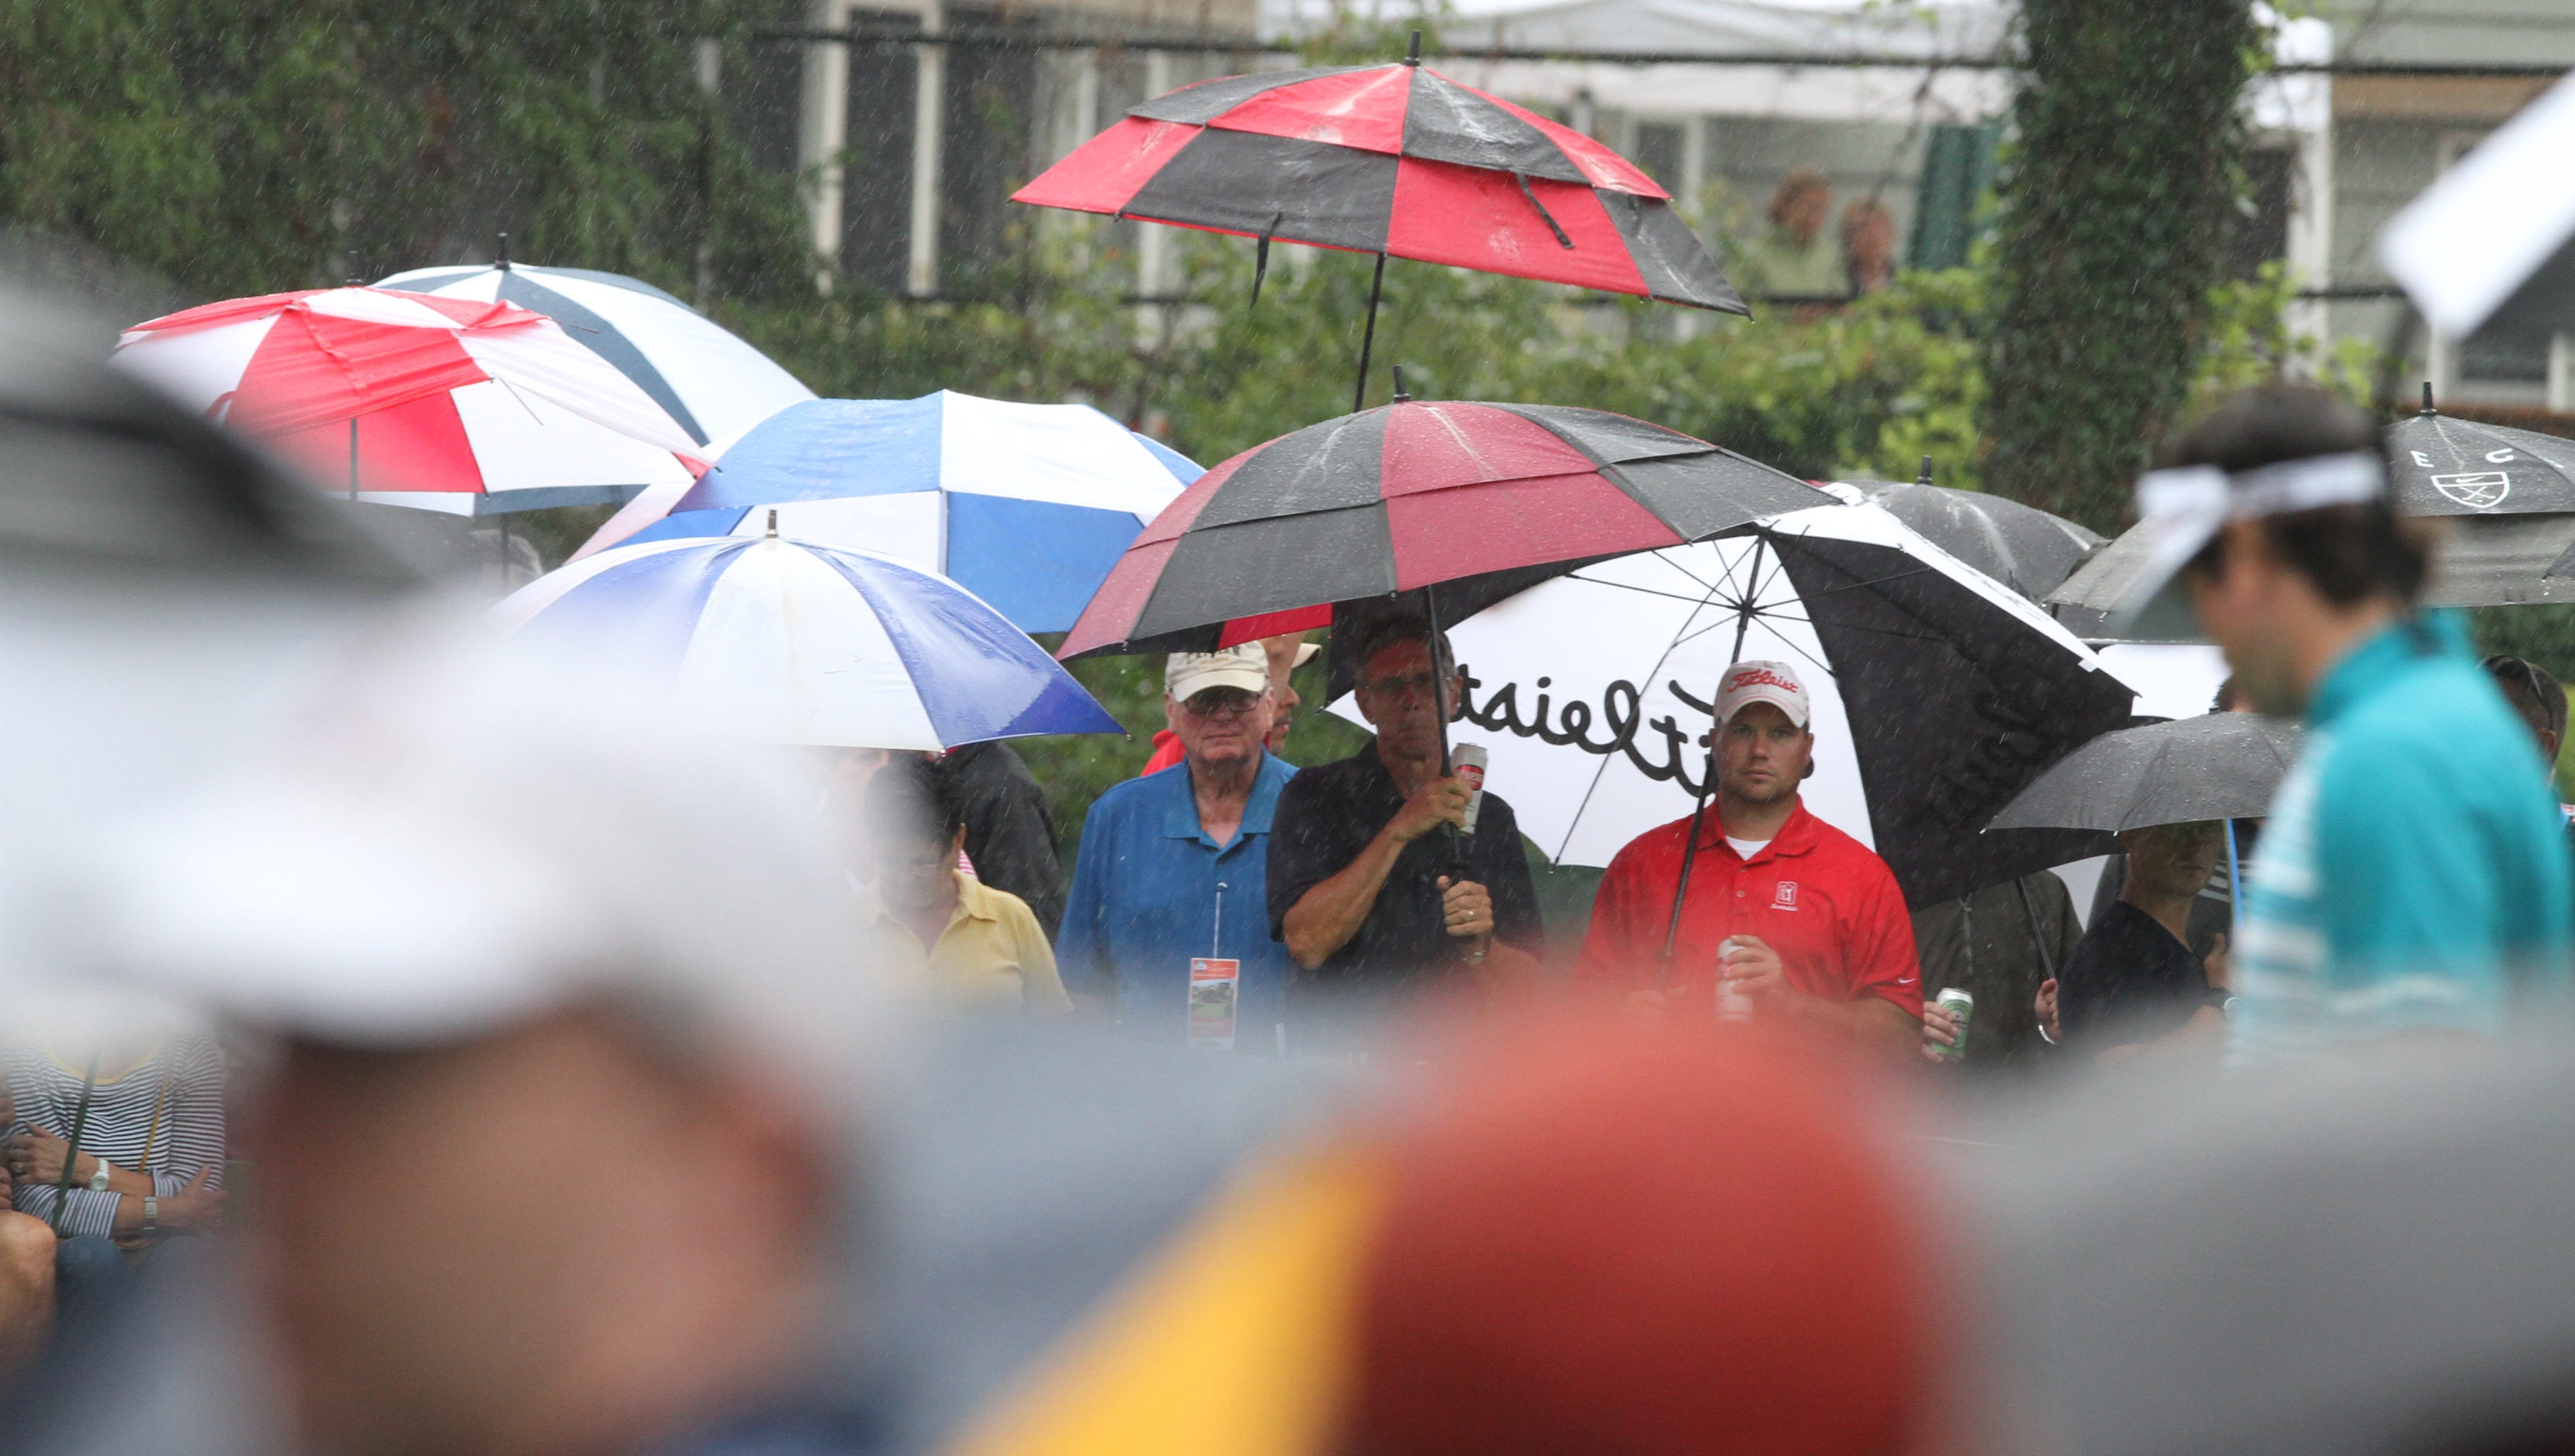 Rain does not keep fans away as some line the fairway on 2 and watch Bubba Watson during the second round at the  95th PGA Championship held at Oak HIll Country Club in Pittsford on August 9, 2013.